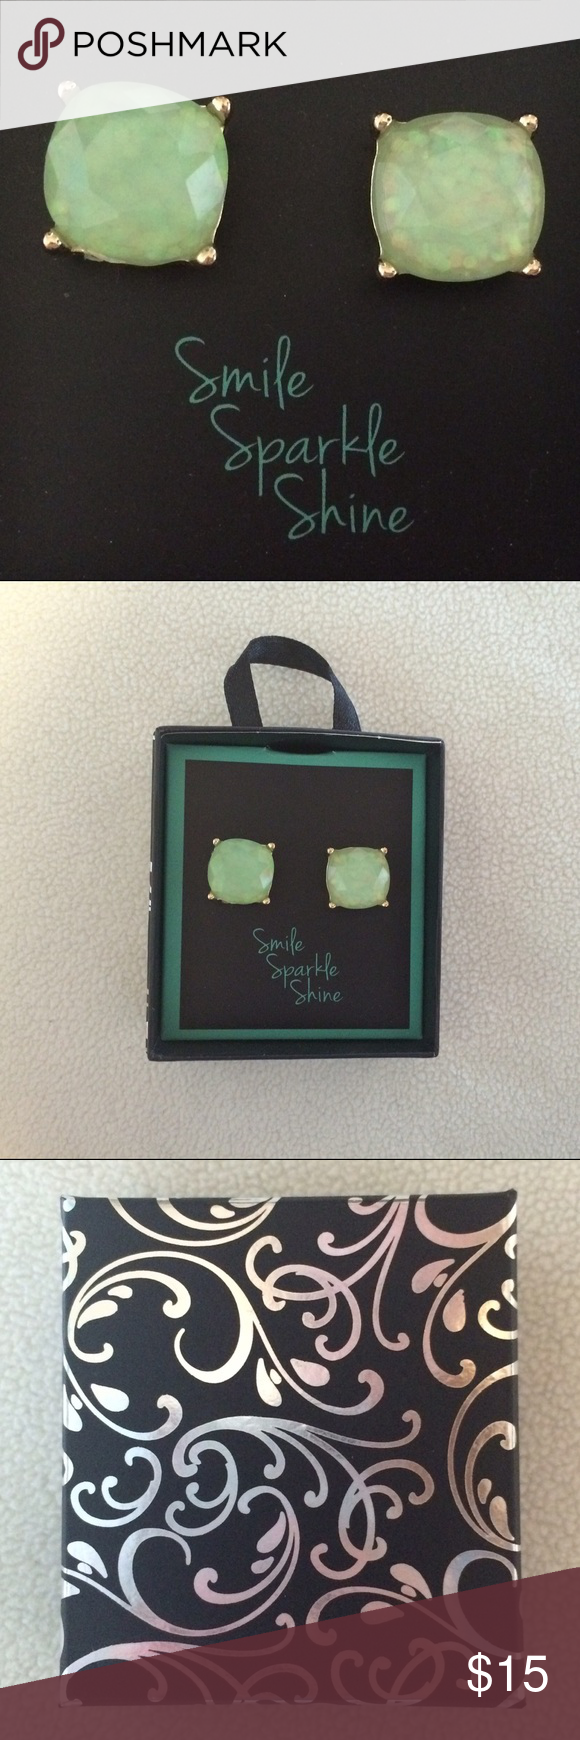 """Mint Glitter Earrings New retail earrings. These are a light mint color and are half an inch tall. They come in a cute gift box that says """"Smile, Sparkle, Shine"""". Jewelry Earrings"""